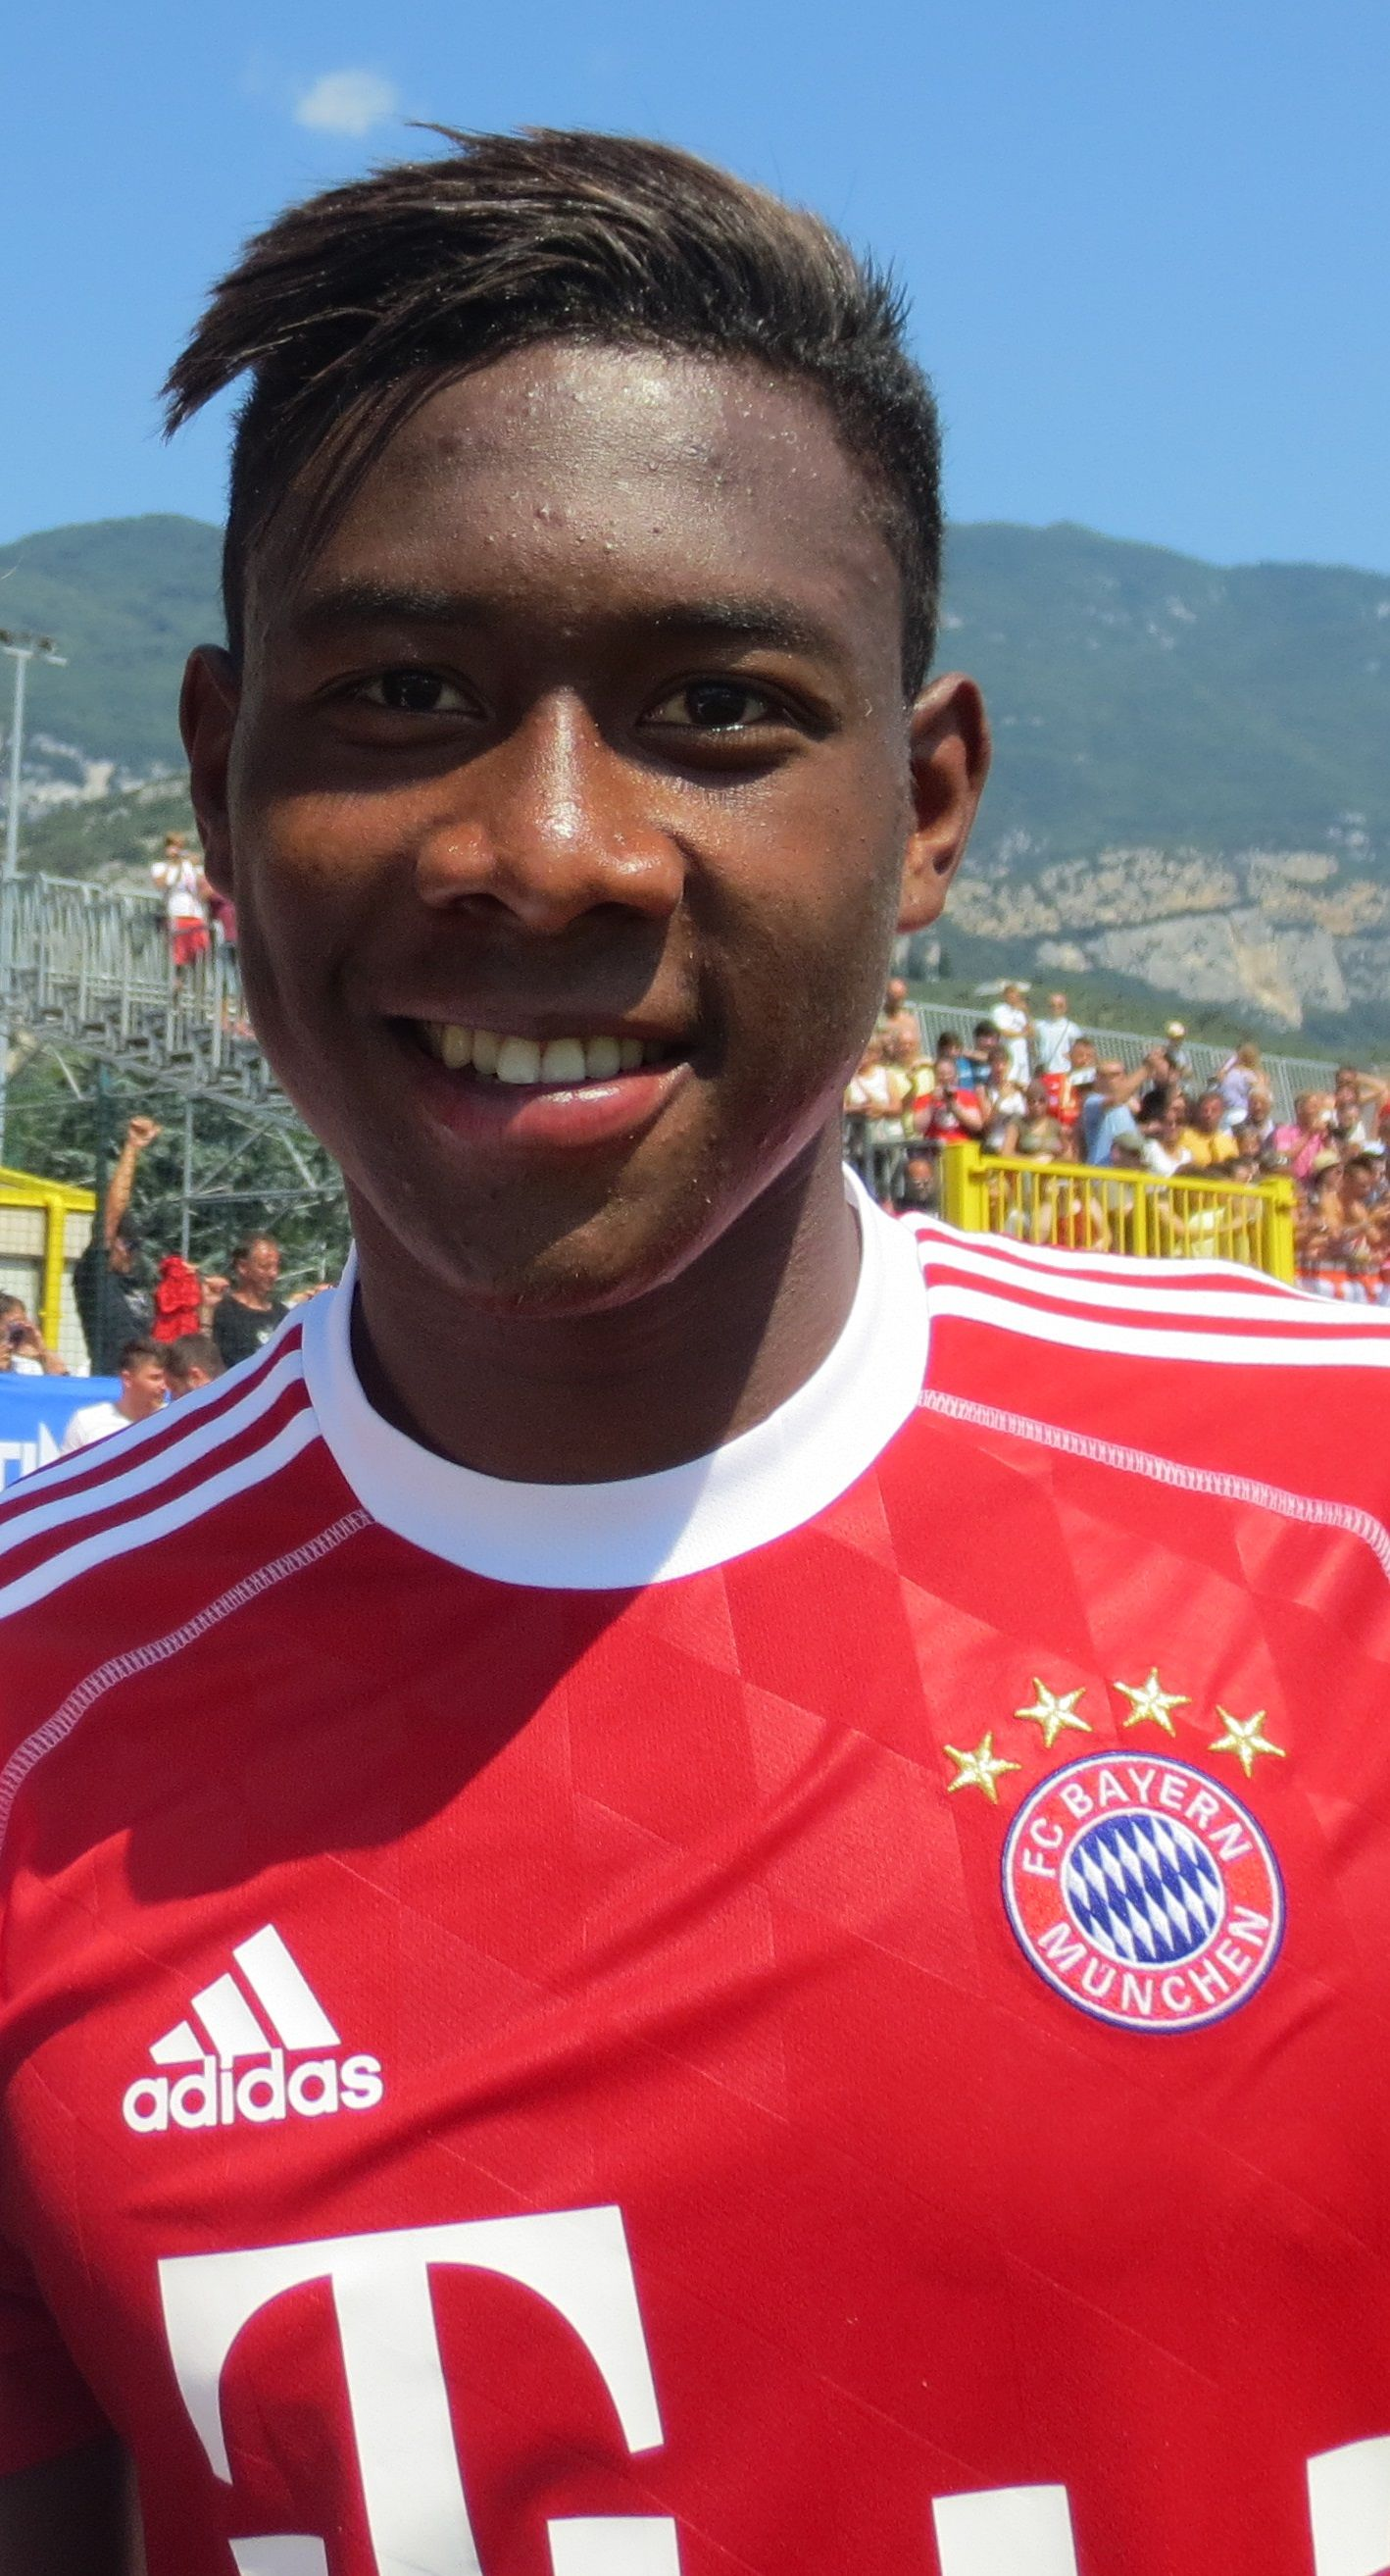 David Alaba Sidelined After Having A Ruptured Ligament And Meniscus